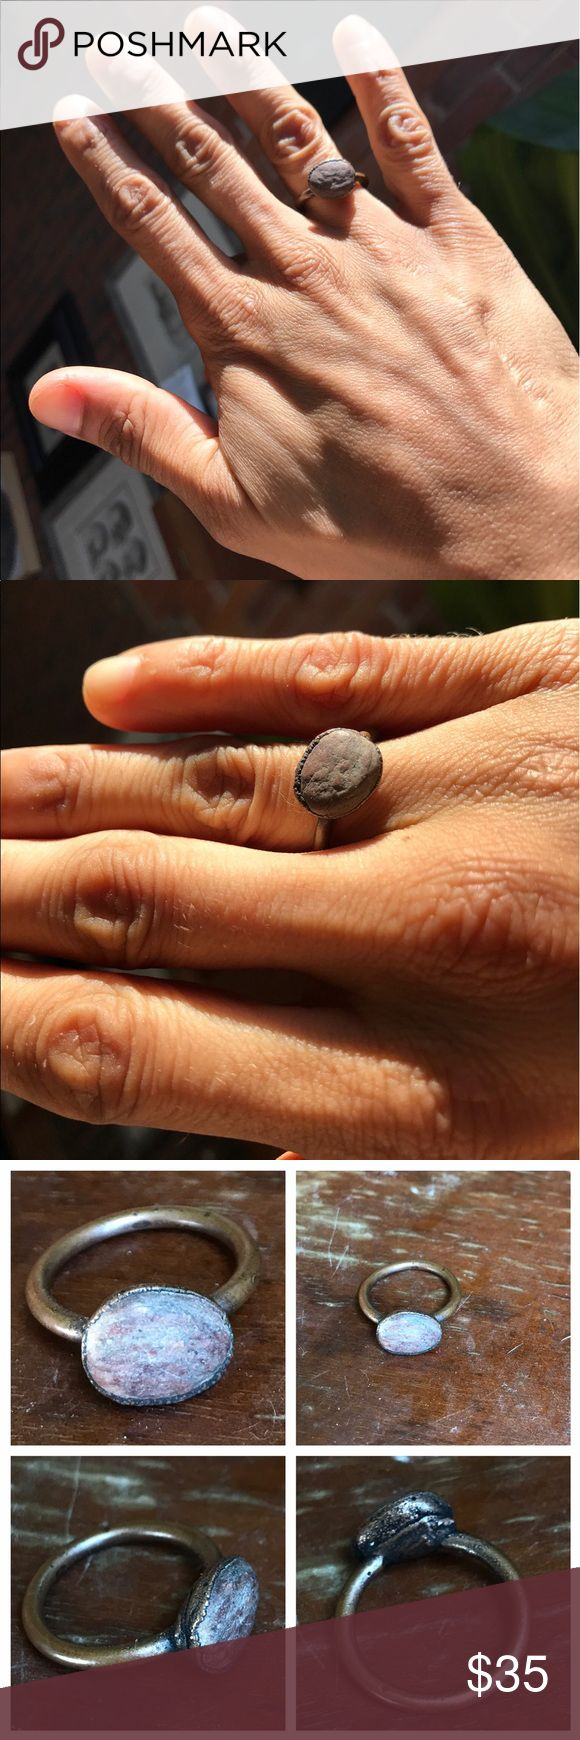 vintage rough cut opal ring fabulously understated rough cut opal ring 💍 size 5.5. bronze band. Seed to Stem Jewelry Rings